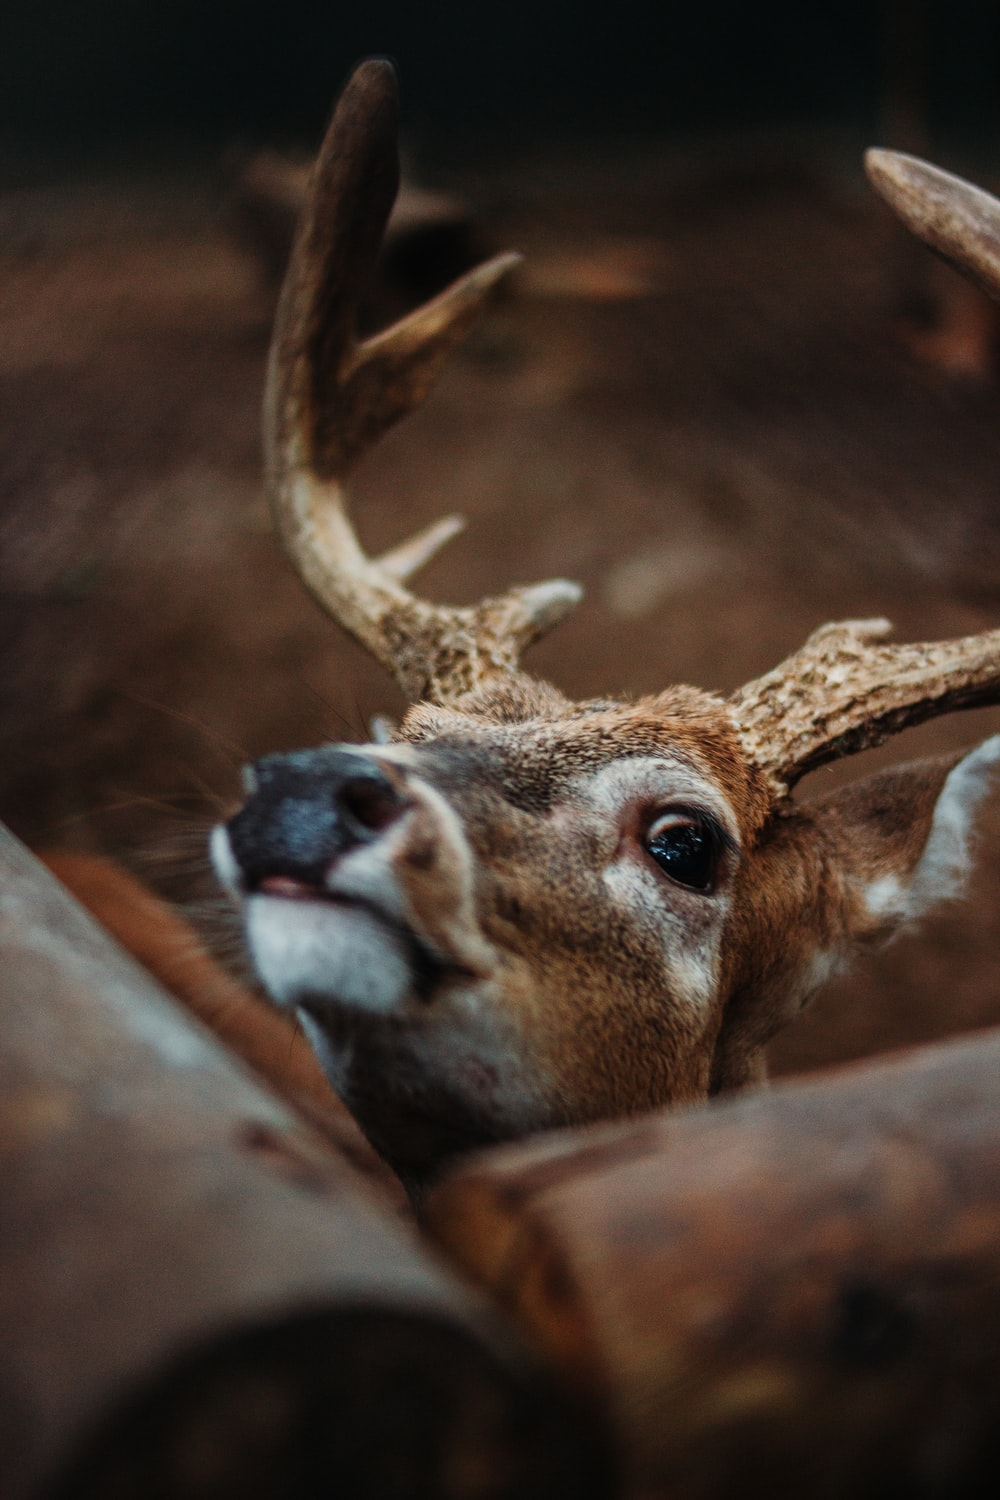 brown deer in close up photography